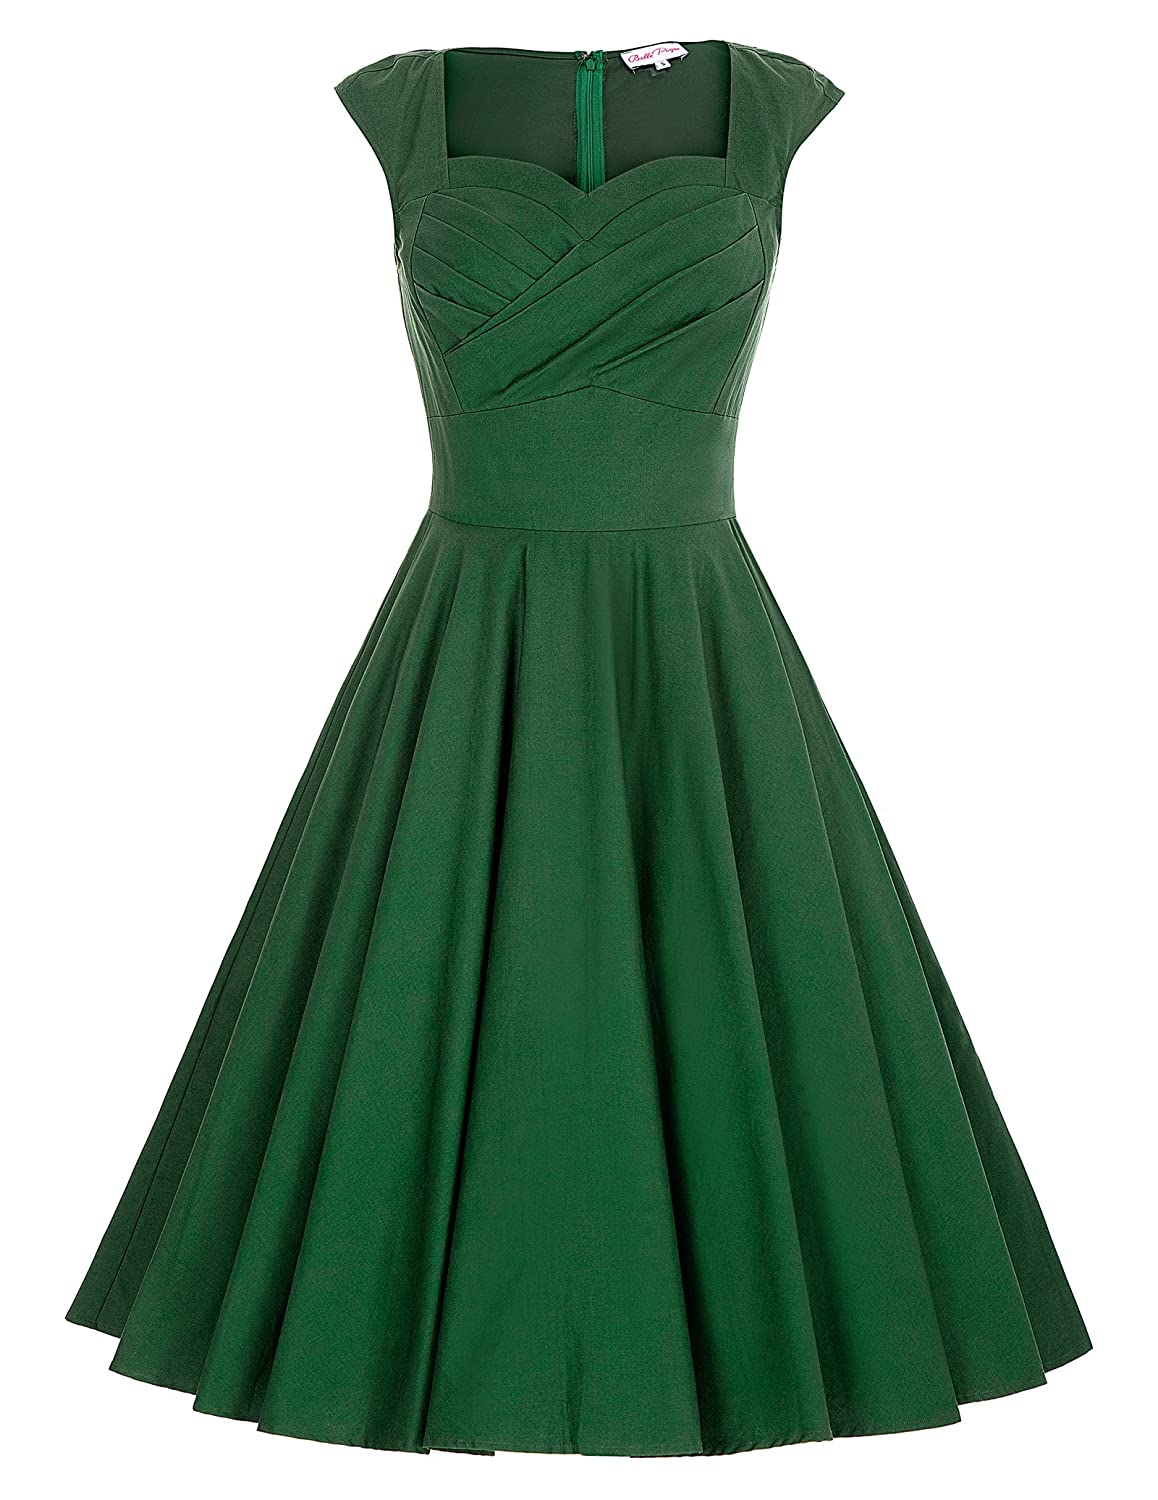 90b10185838 Top 10 wholesale Green Swing Dress - Chinabrands.com